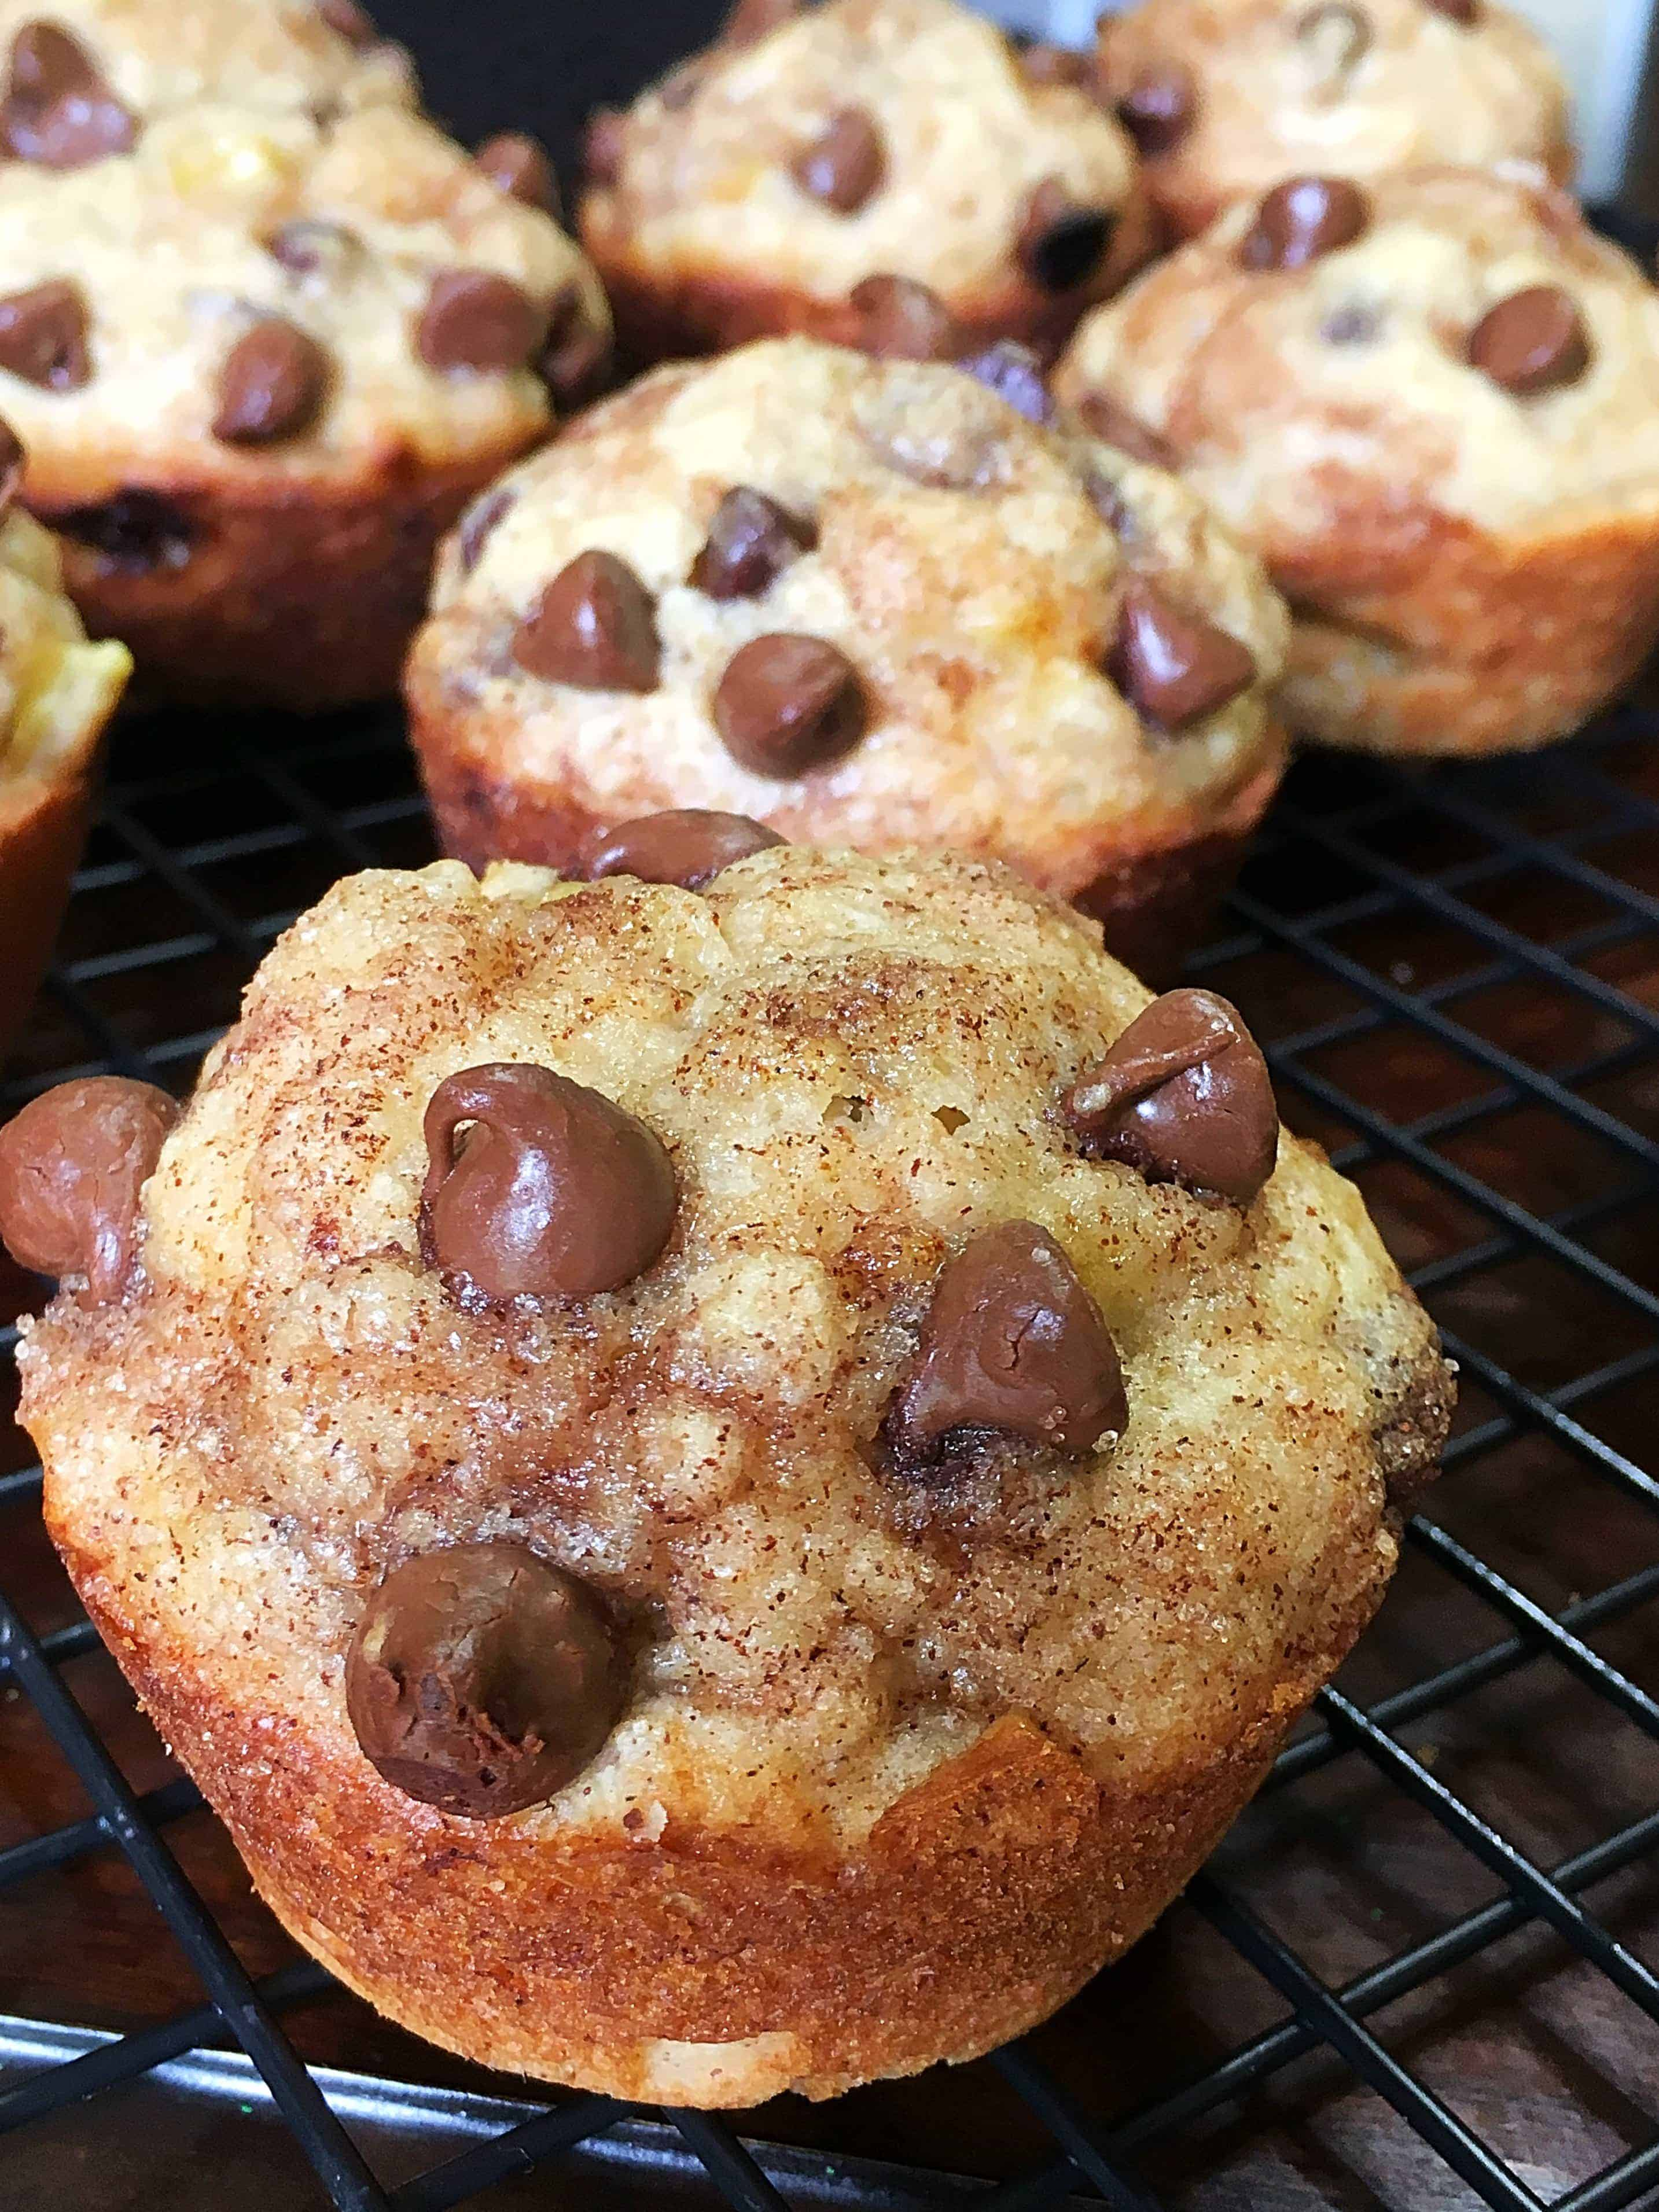 Cinnamon Sugar Chocolate Chip Banana Muffins- the most delicious, decadent breakfast treat with all the right flavors!